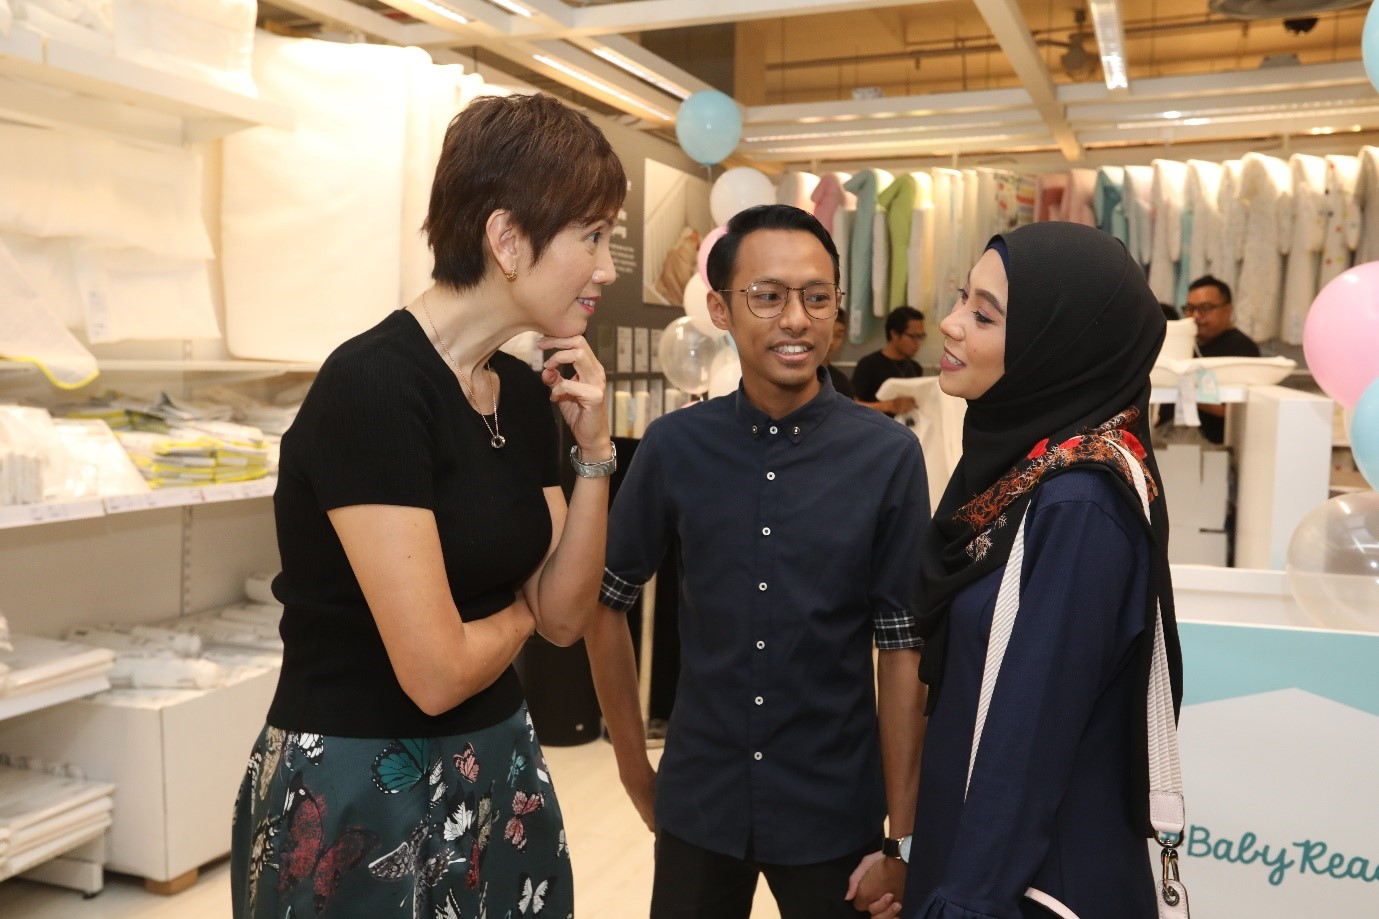 Minister Josephine Teo interacting with a couple who is currently expecting their first child (Muhammah Abdul Jabbar Bin Kassim, 27, senior technician Marianoor Binte Kam Sani, 21, customer service agent)